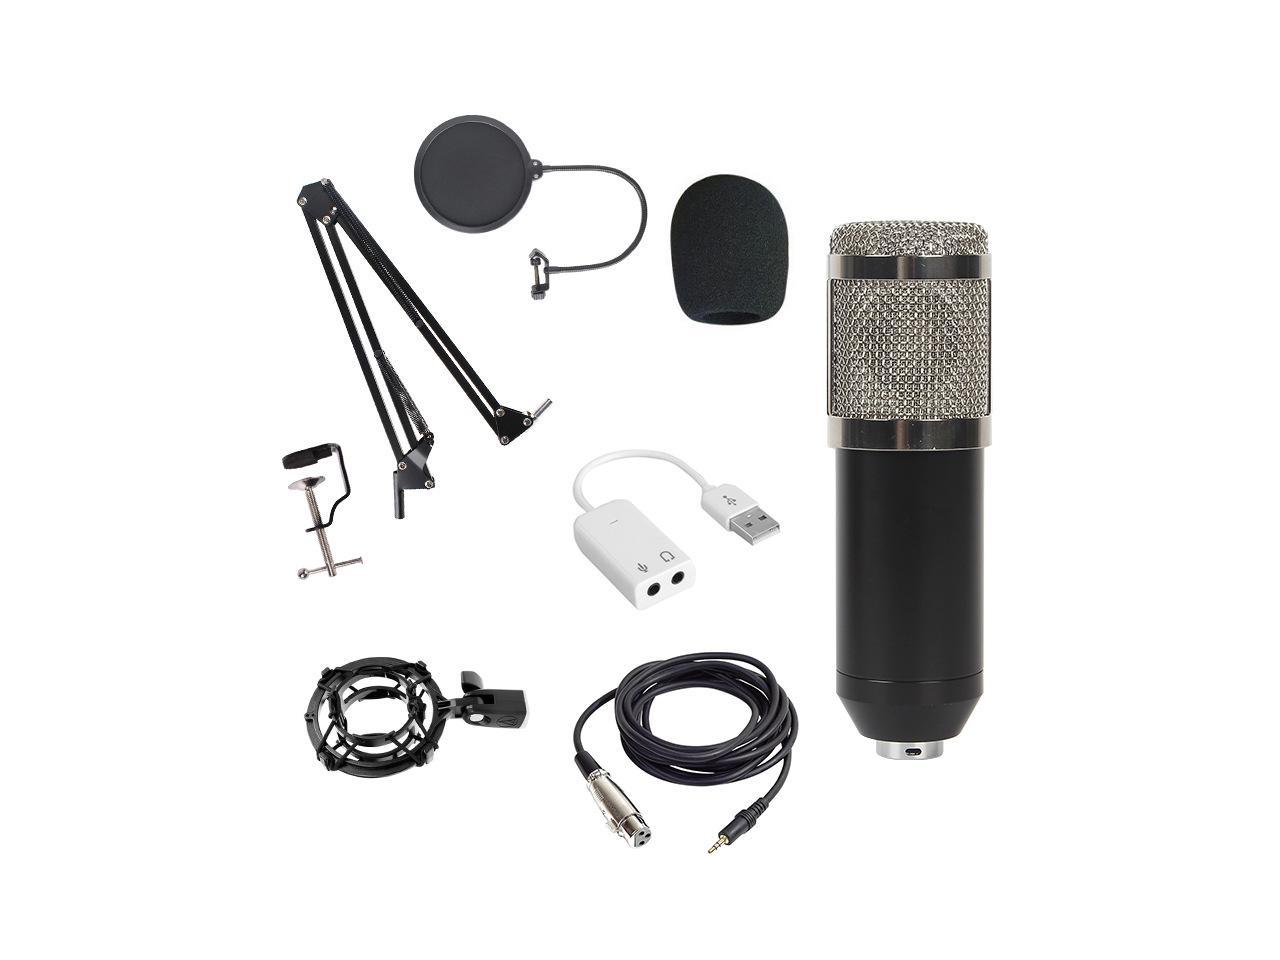 Microphone and all included accessories are on display.